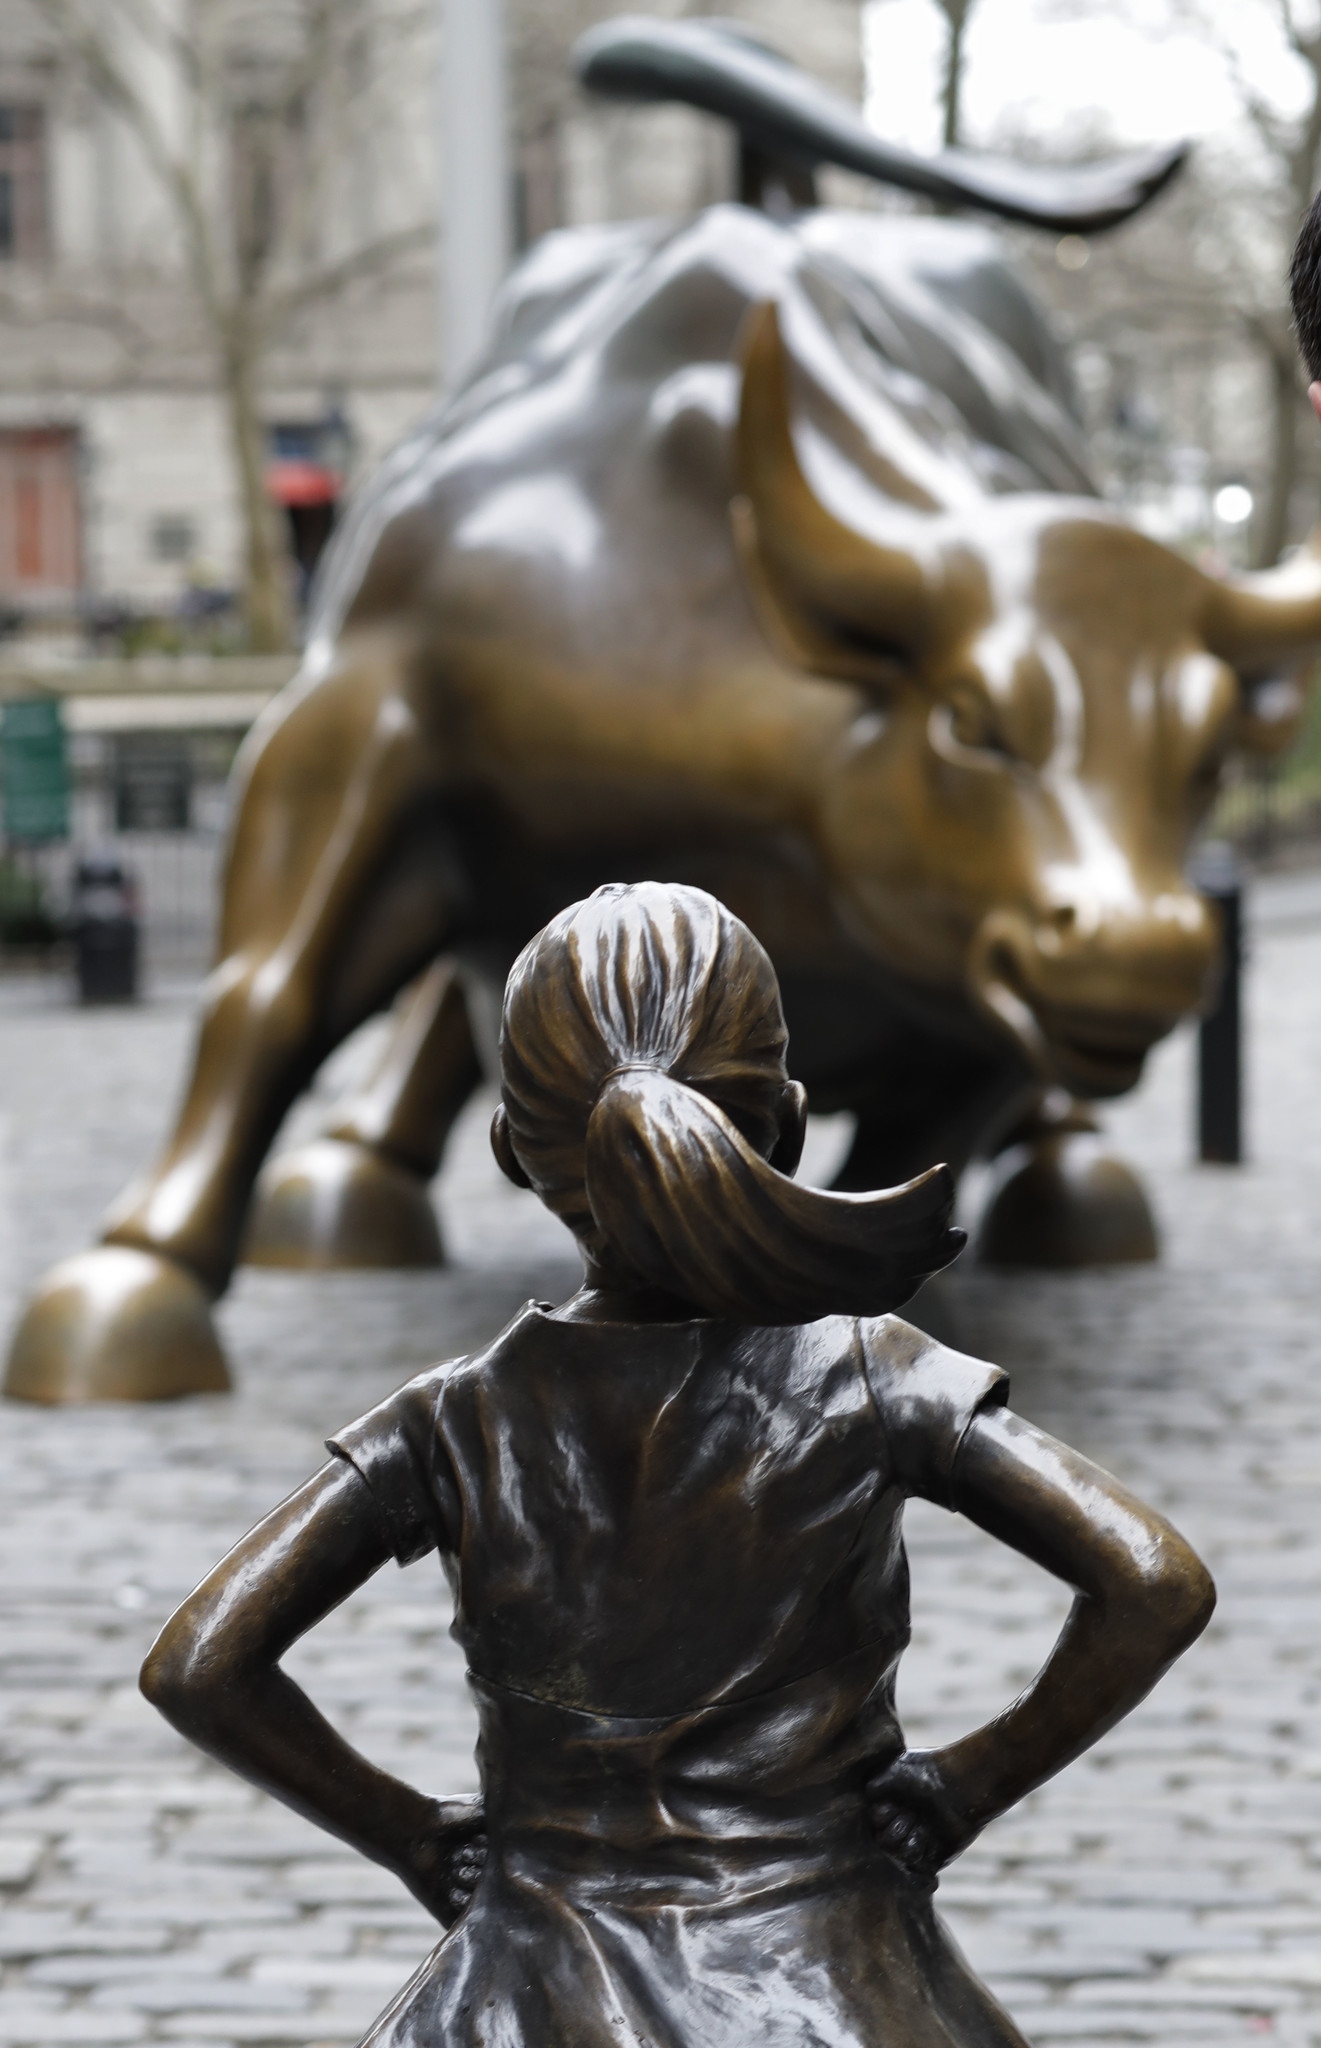 Wall Street Bull Art charging bull sculptor says fearless girl distorts his art, so